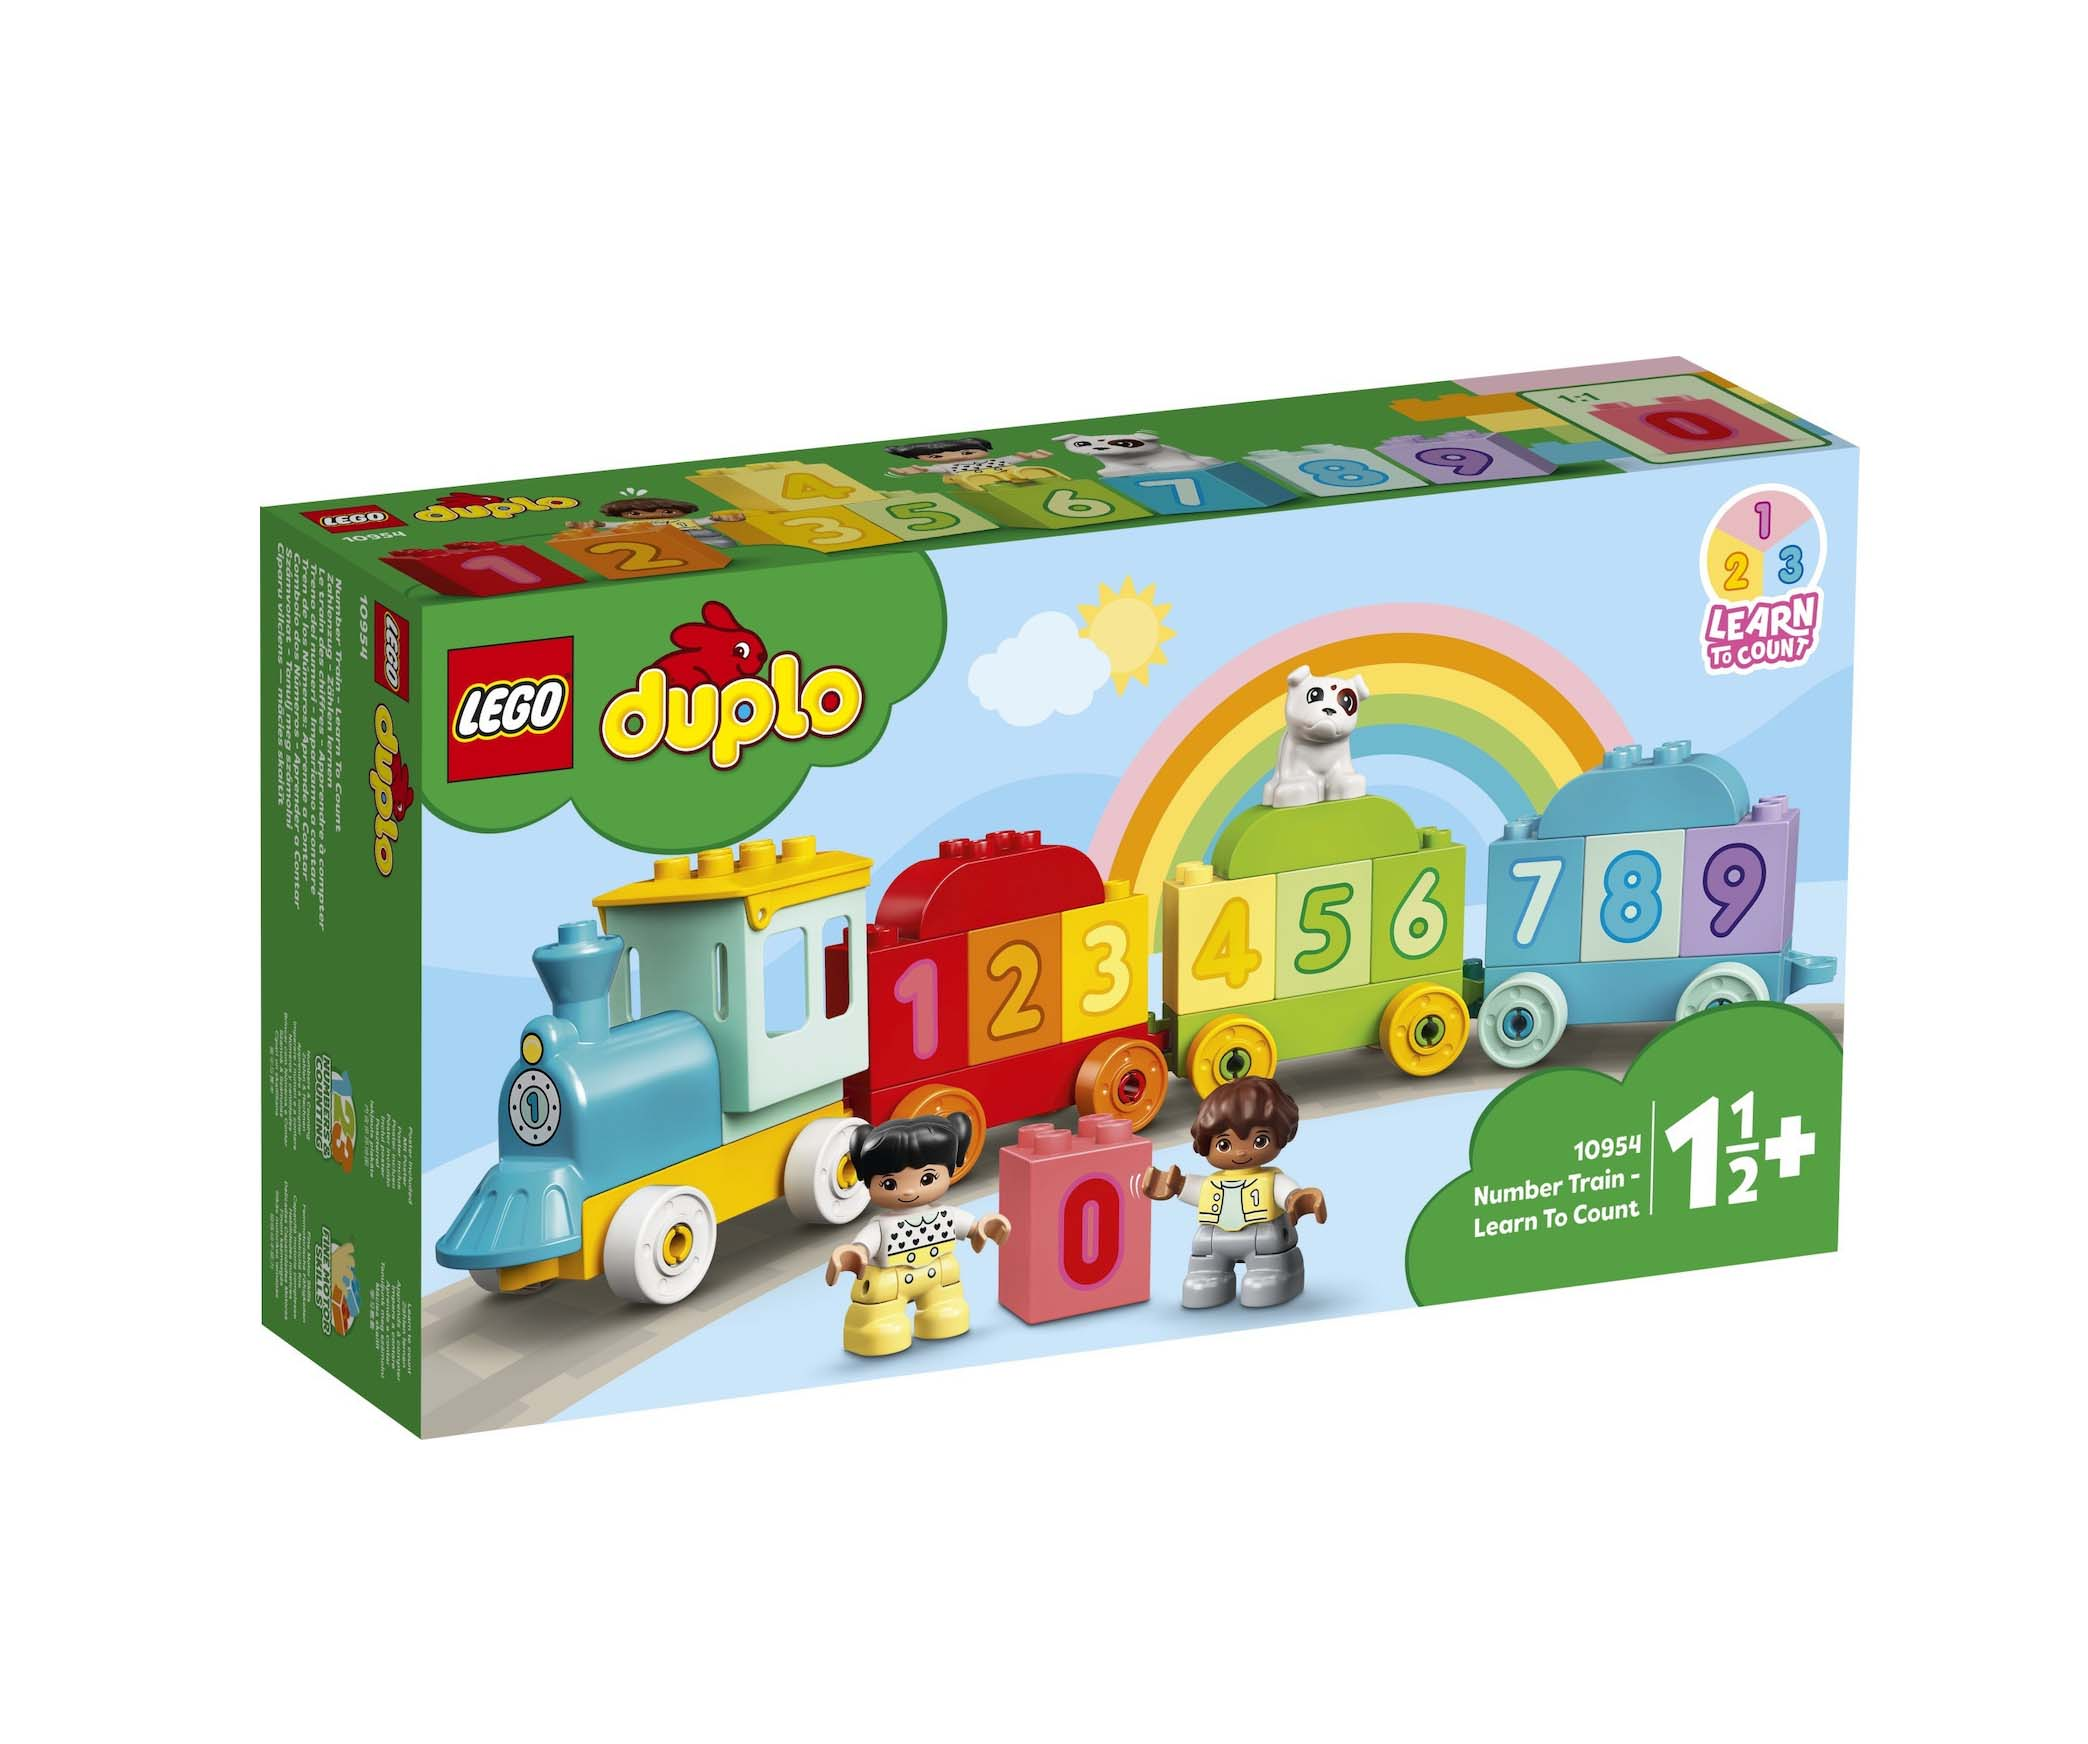 Lego Duplo: Number Train Learn To Count 10954